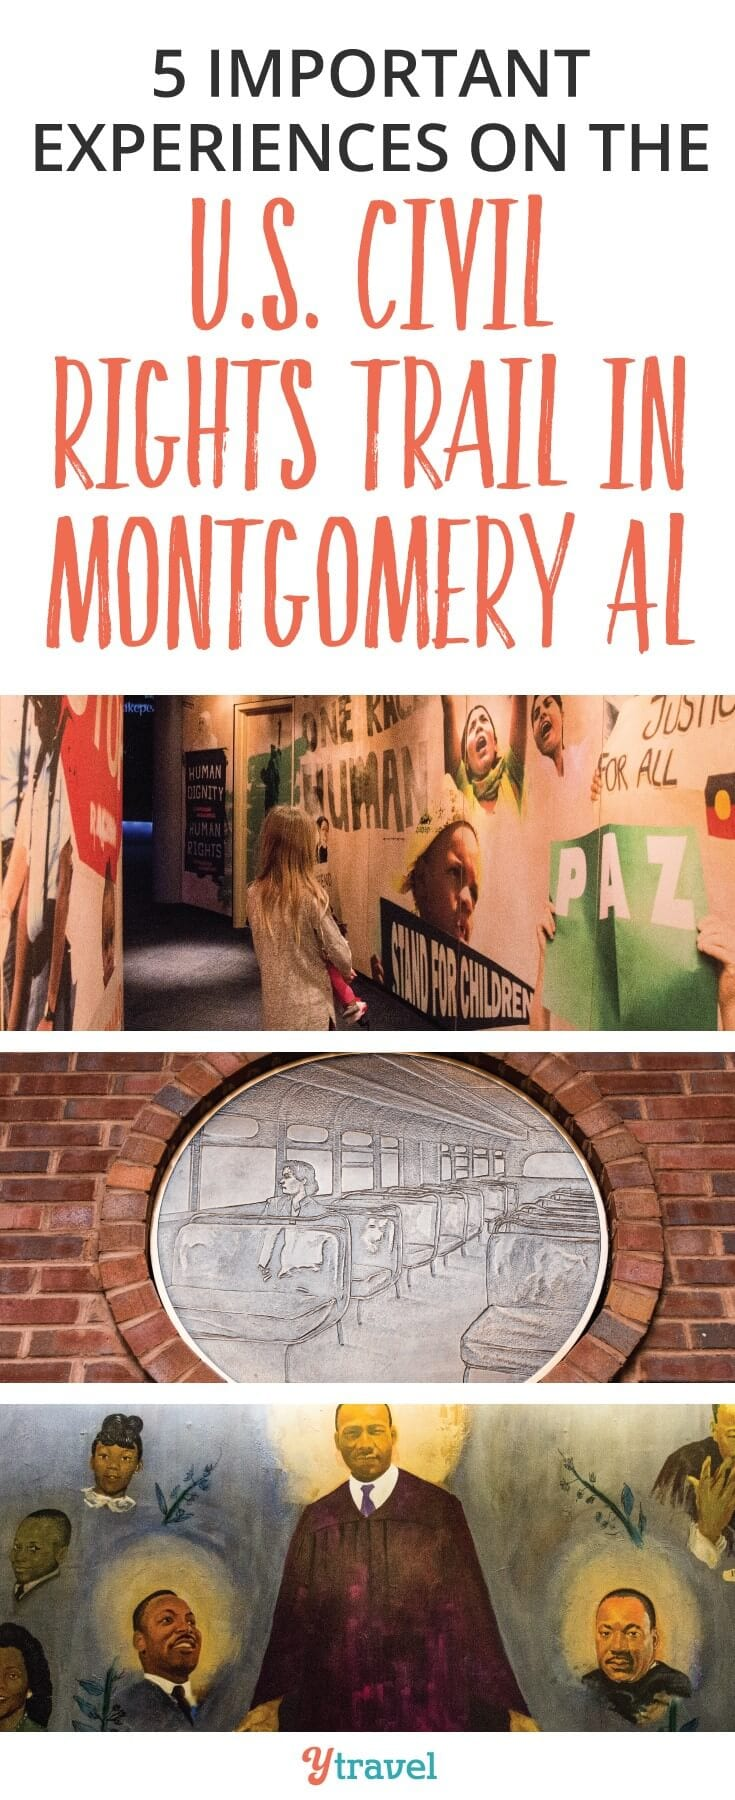 Things to do in Montgomery, AL: Montgomery Alabama is really the birthplace of Civil Rights Movement. There are five important experiences on the U.S. Civil Rights Trail in Montgomery Alabama that will help you gain an understanding of the struggles and the triumphs and how what happened here changed the world.